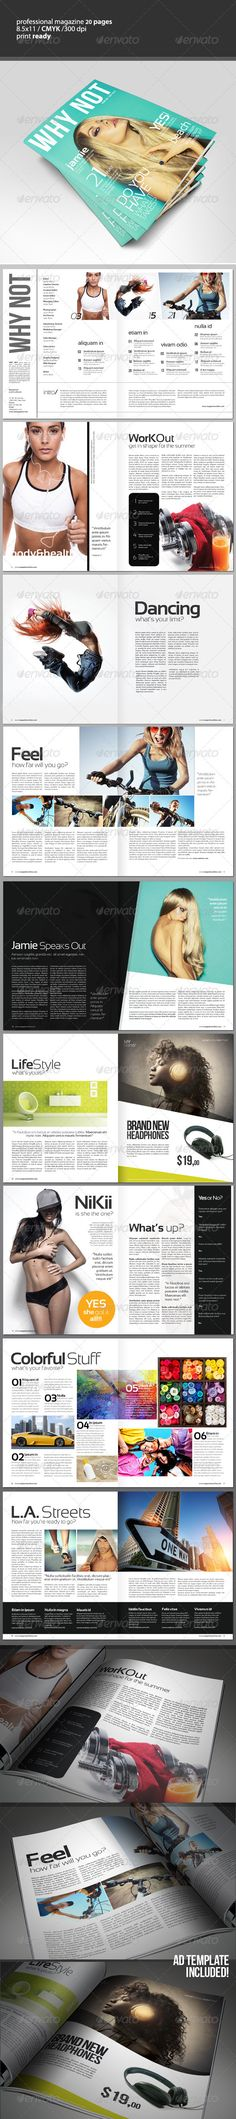 Product Promotion Catalog InDesign Template v4 Indesign - fashion design brochure template